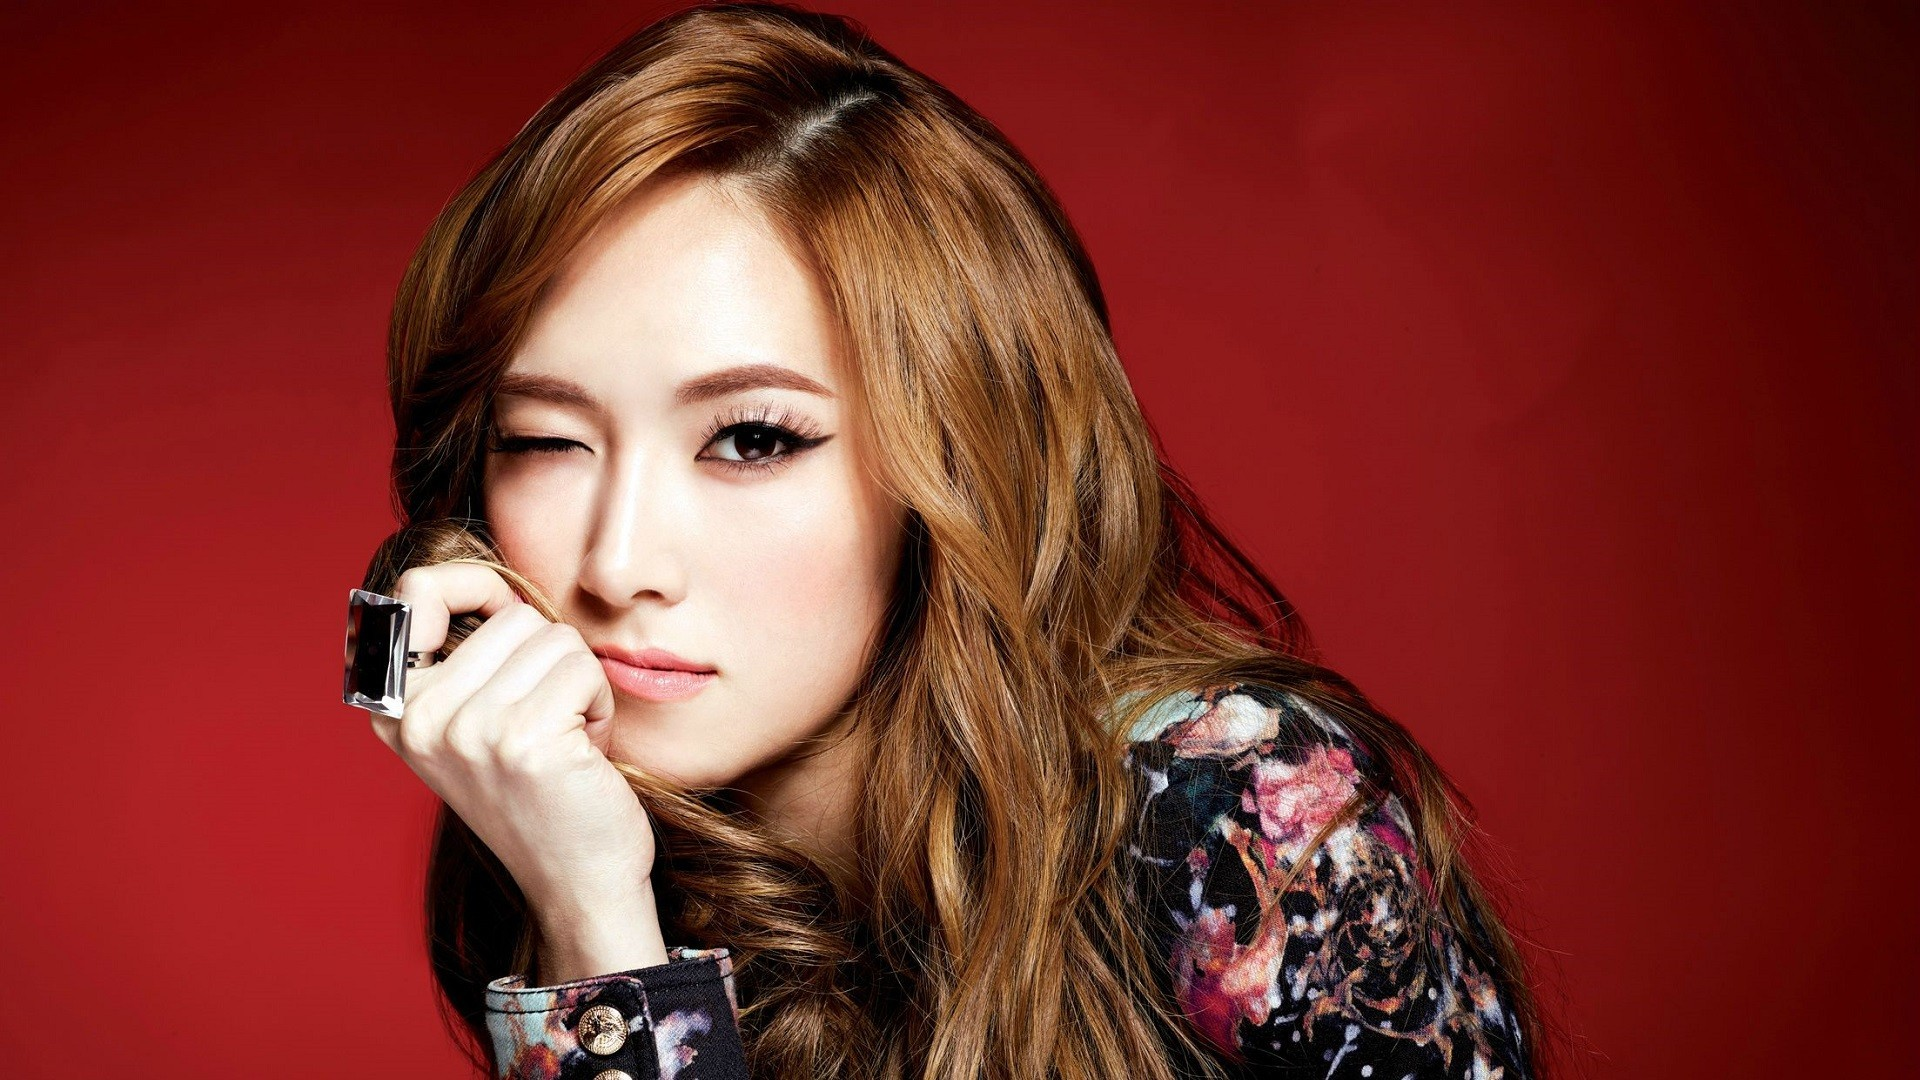 1920x1080 women Girls Generation SNSD Asians Jessica Jung wink faces - Wallpaper  (#2923651) /